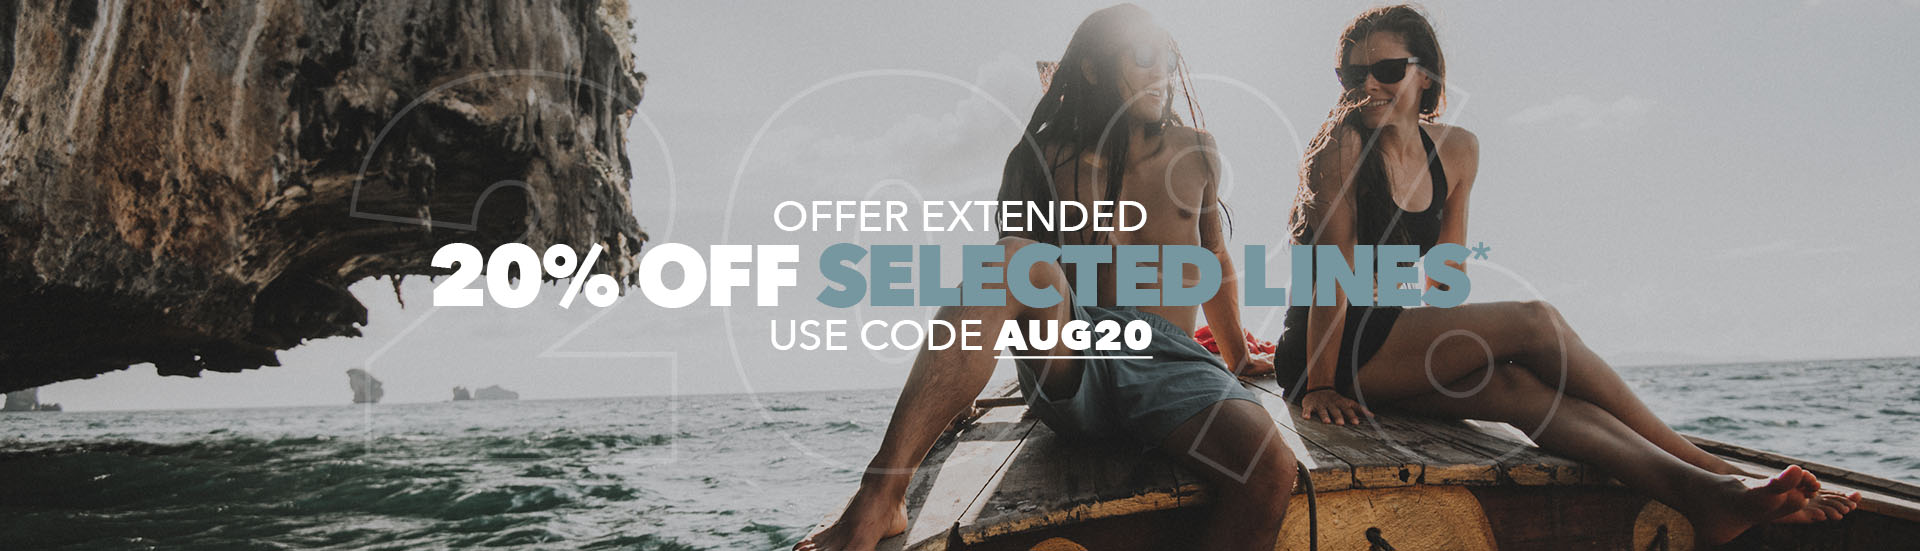 20% Off Selected Lines Offer Extended